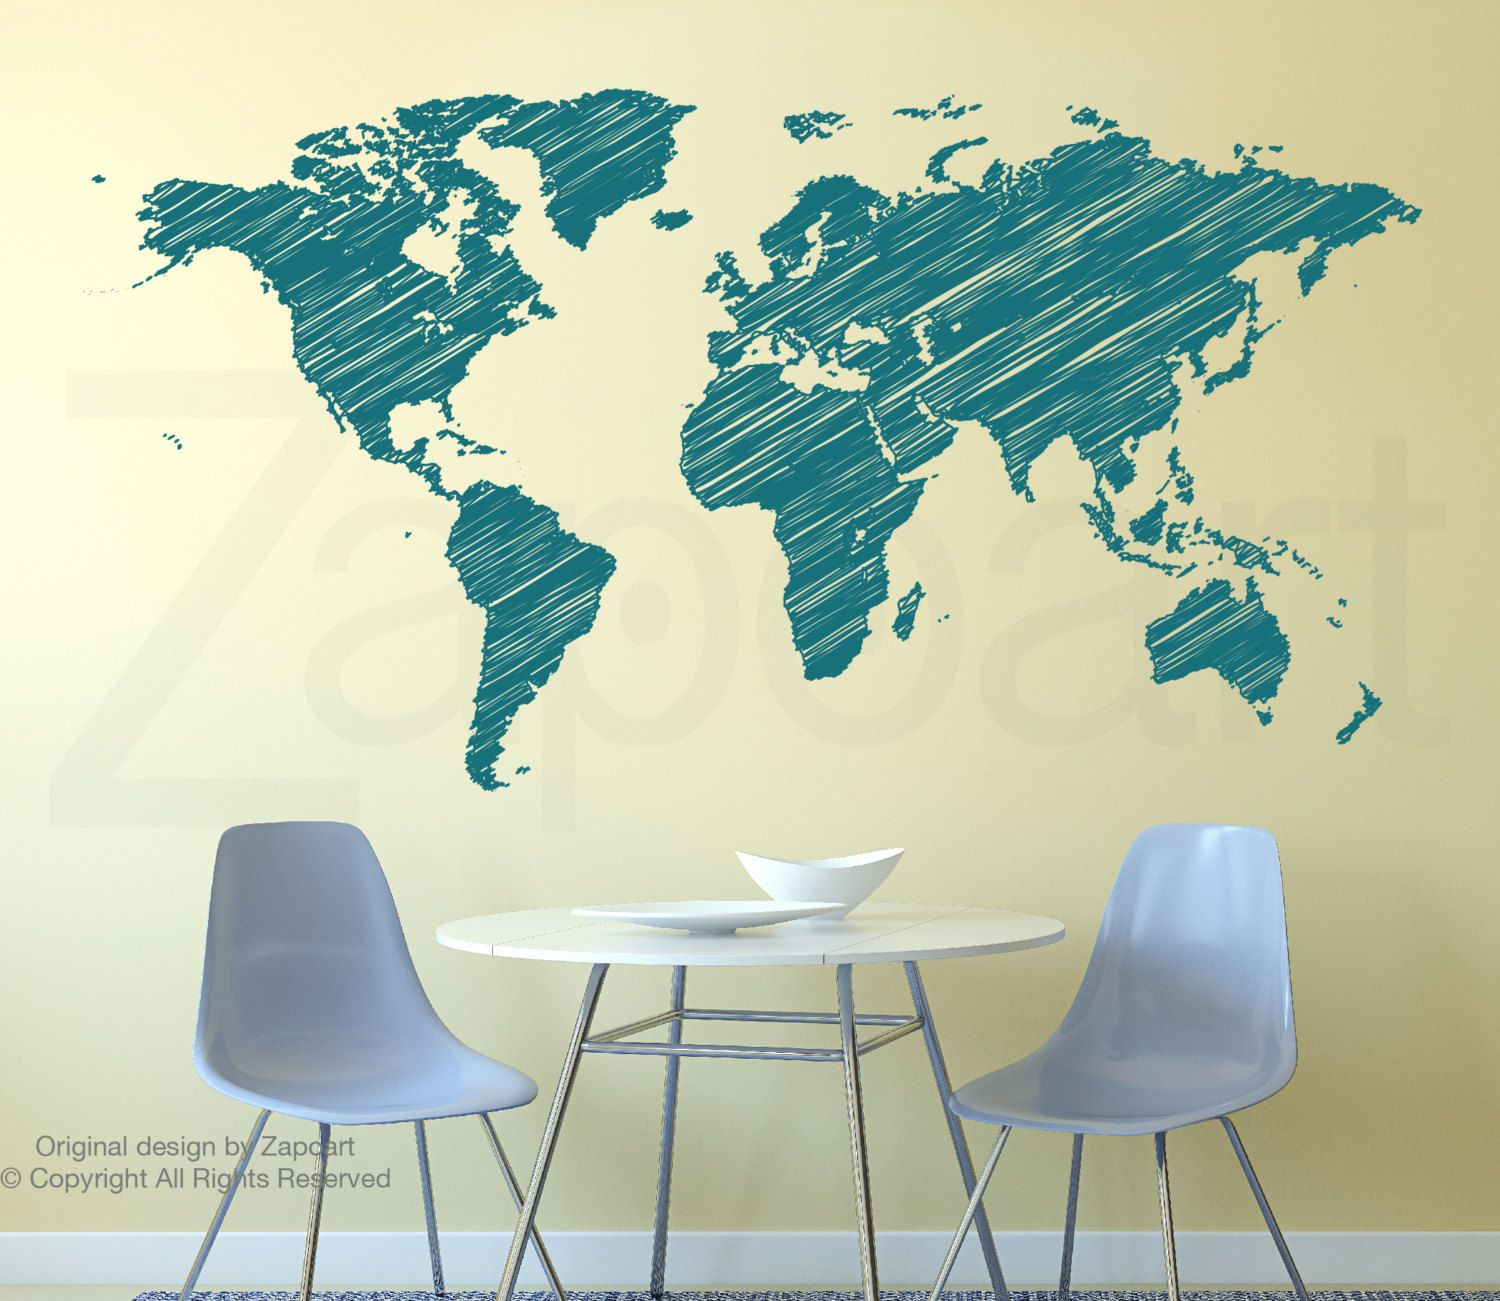 Hand Drawn World Map Wall Decals | Wall decals and Walls